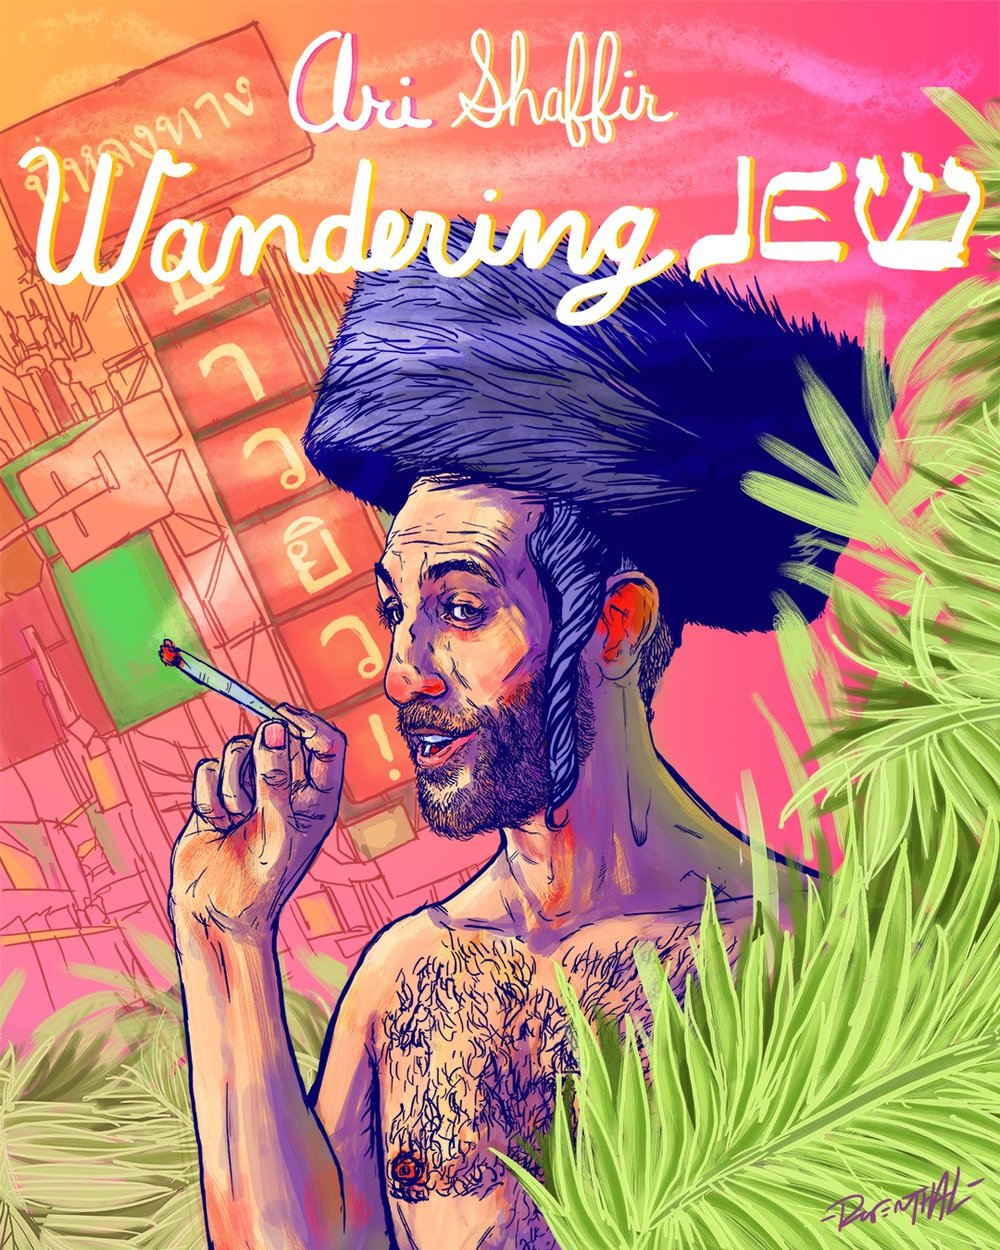 Ari Shaffir The Wandering Jew